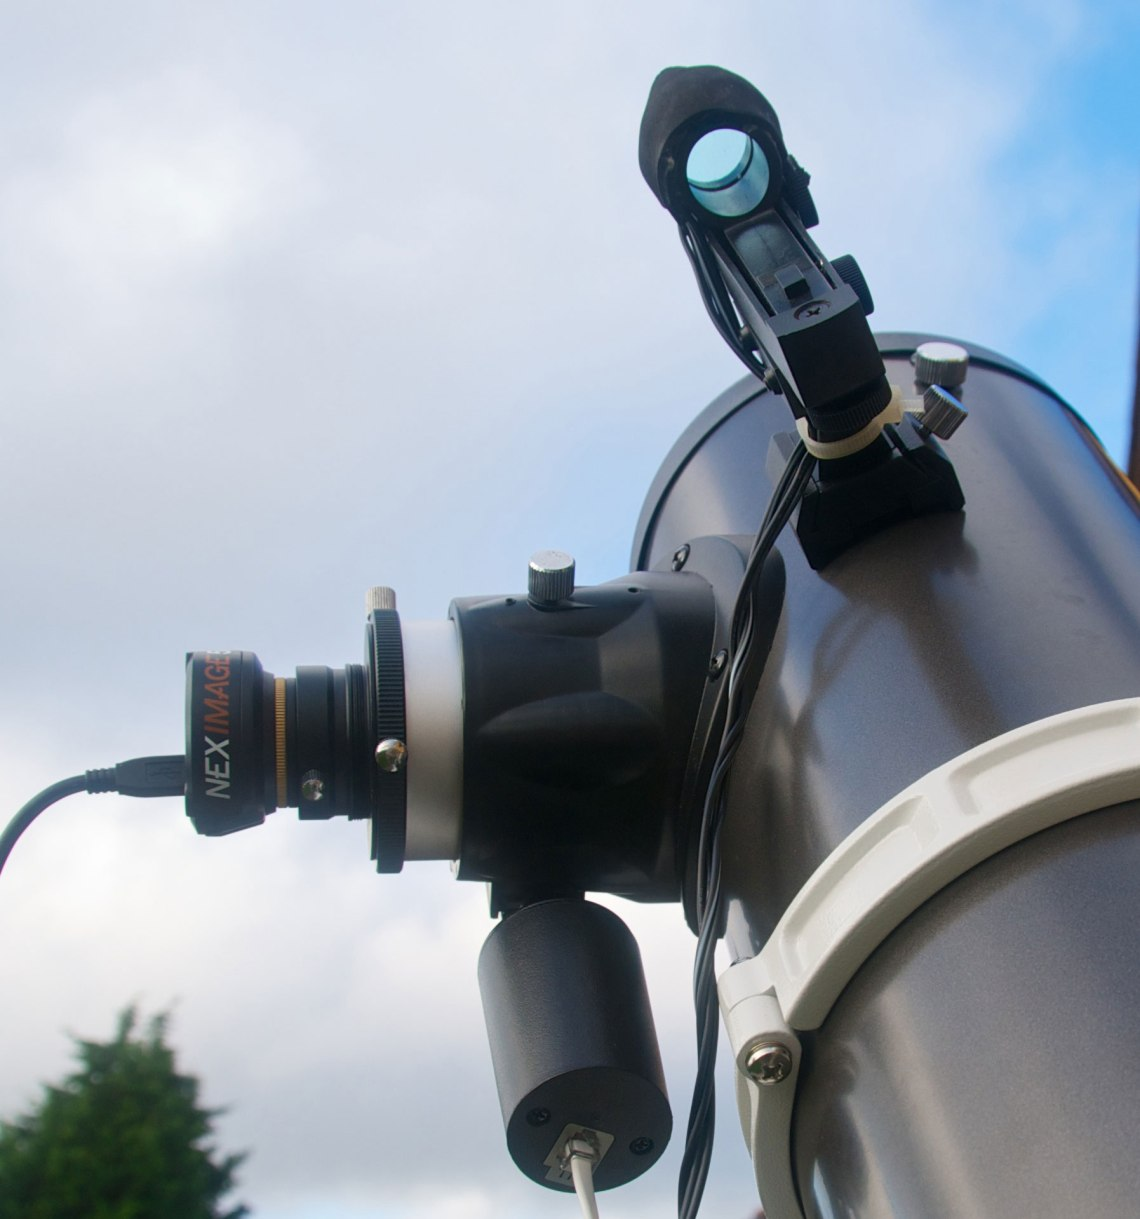 The QHY5L-II guide camera used as a webcam. Credit: Mike Barrett